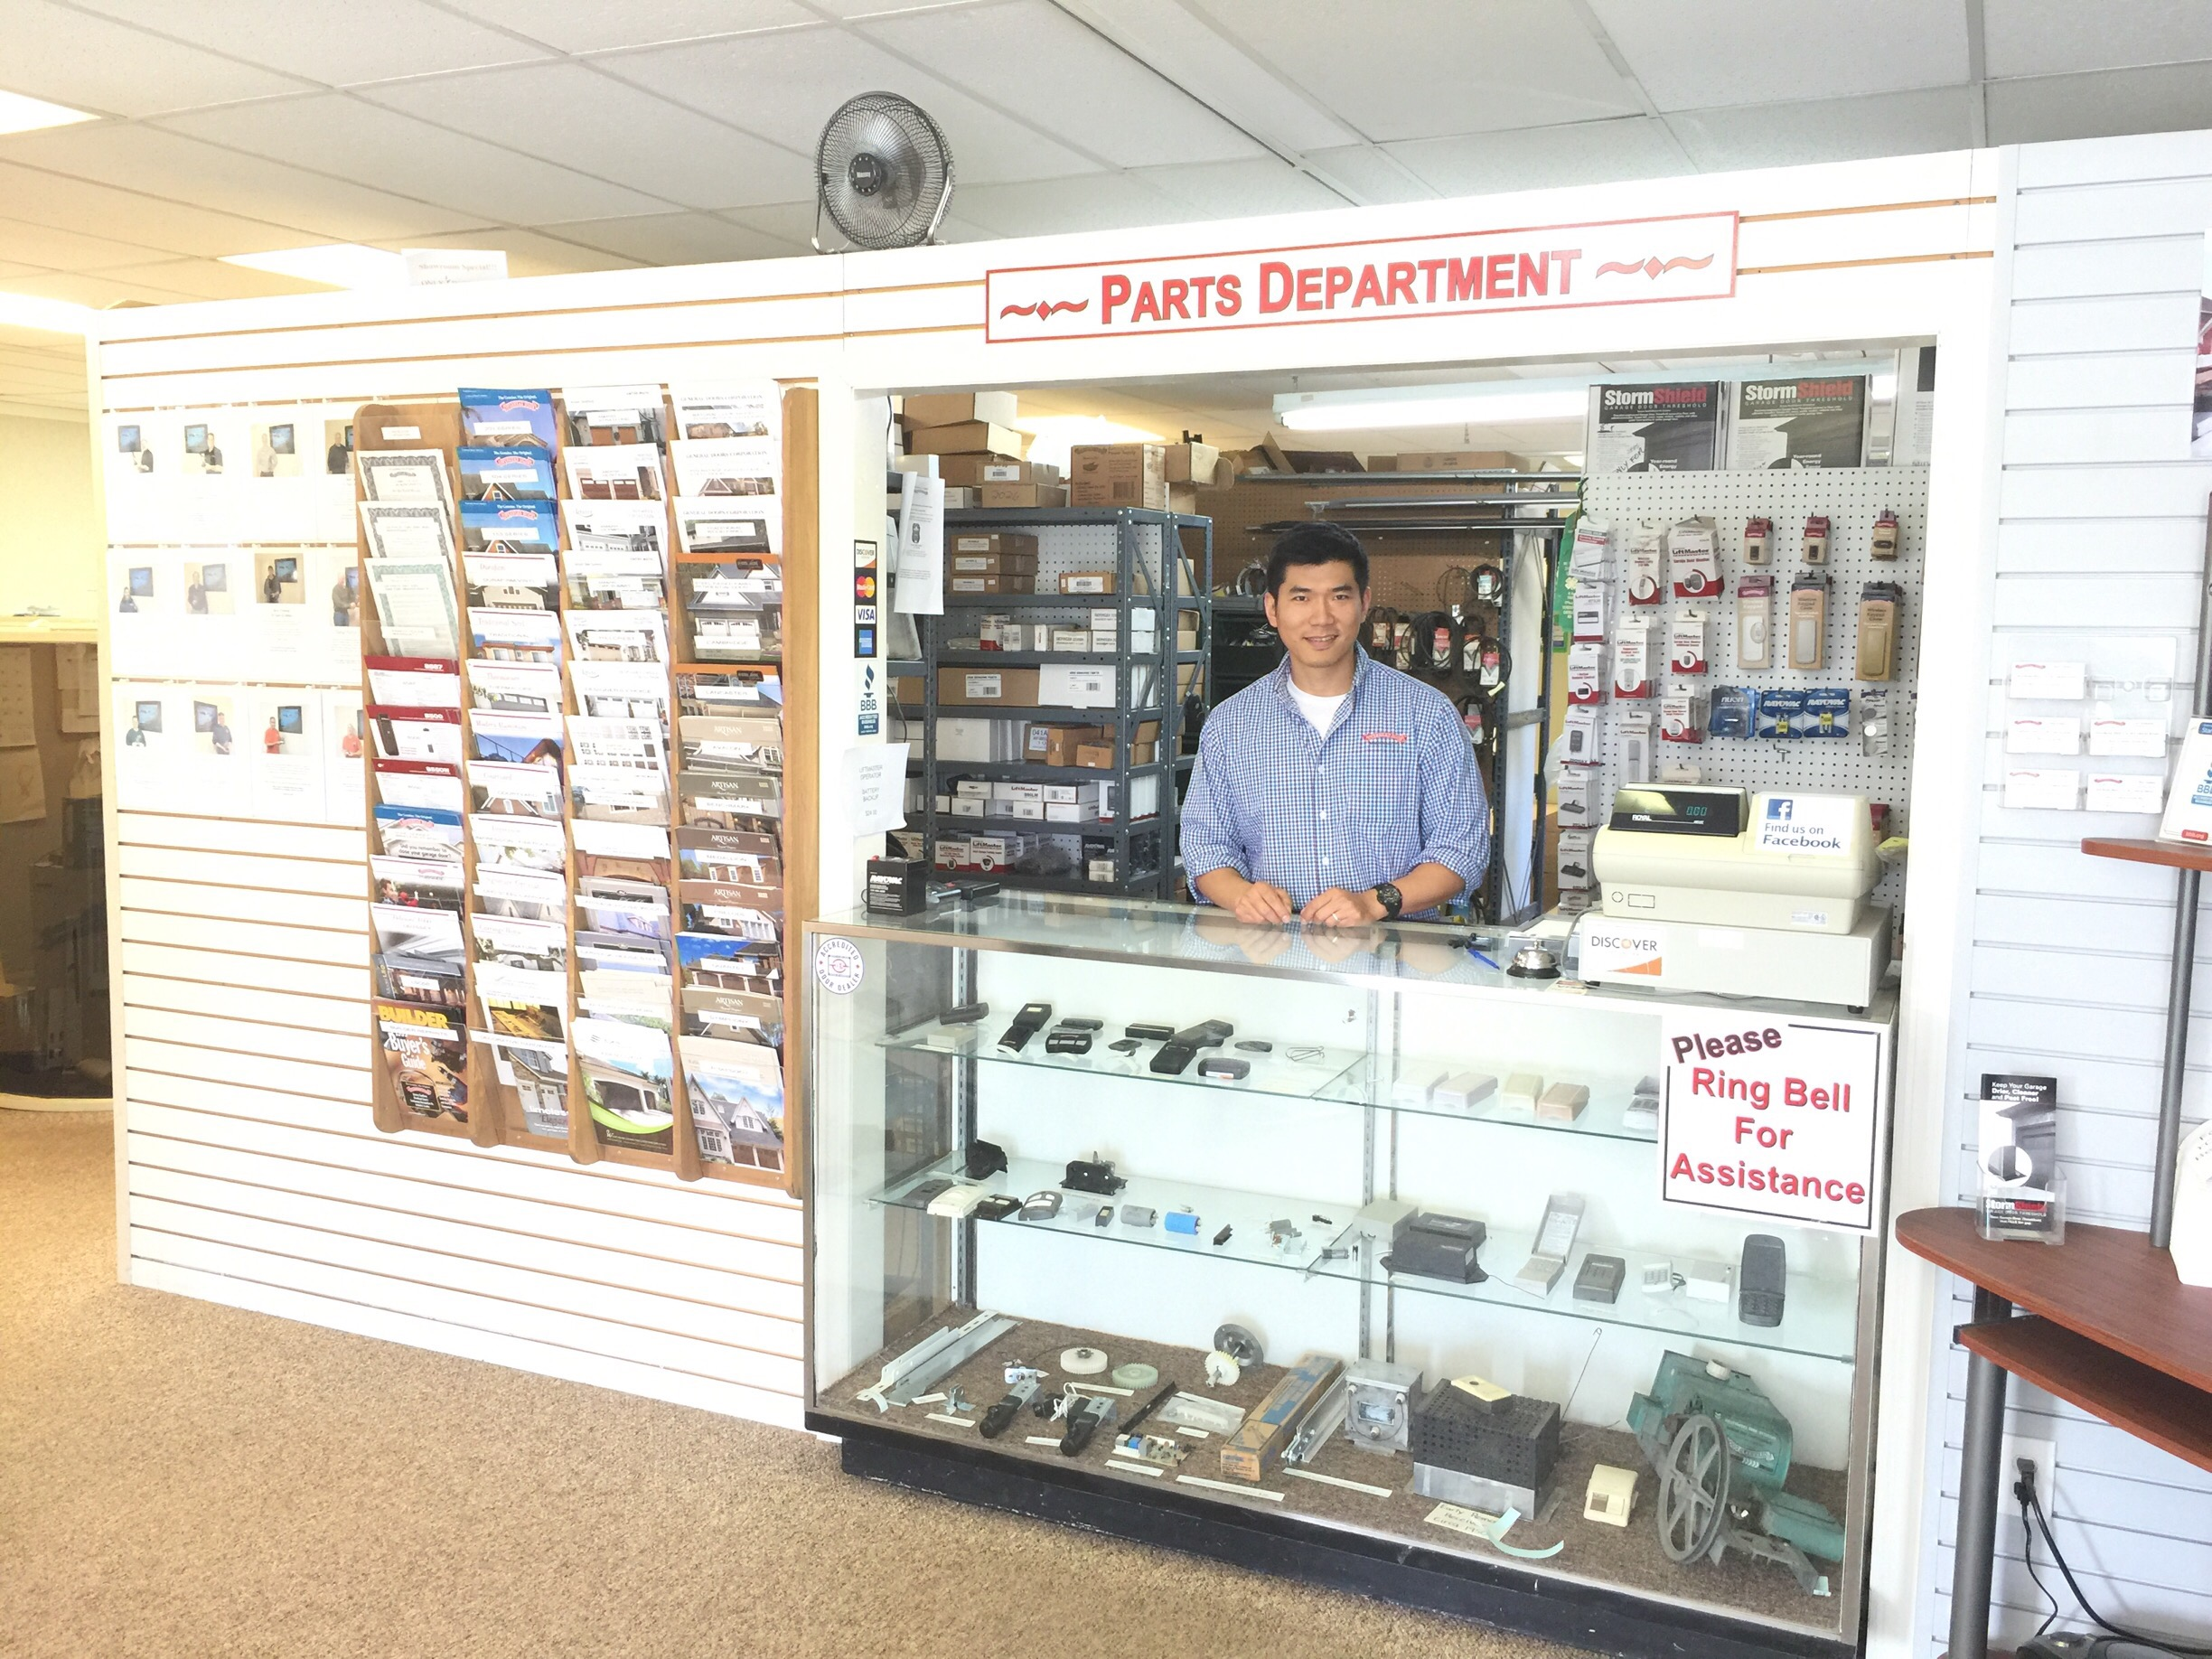 Garage Door & Opener Remotes & Parts-Store in New Jersey